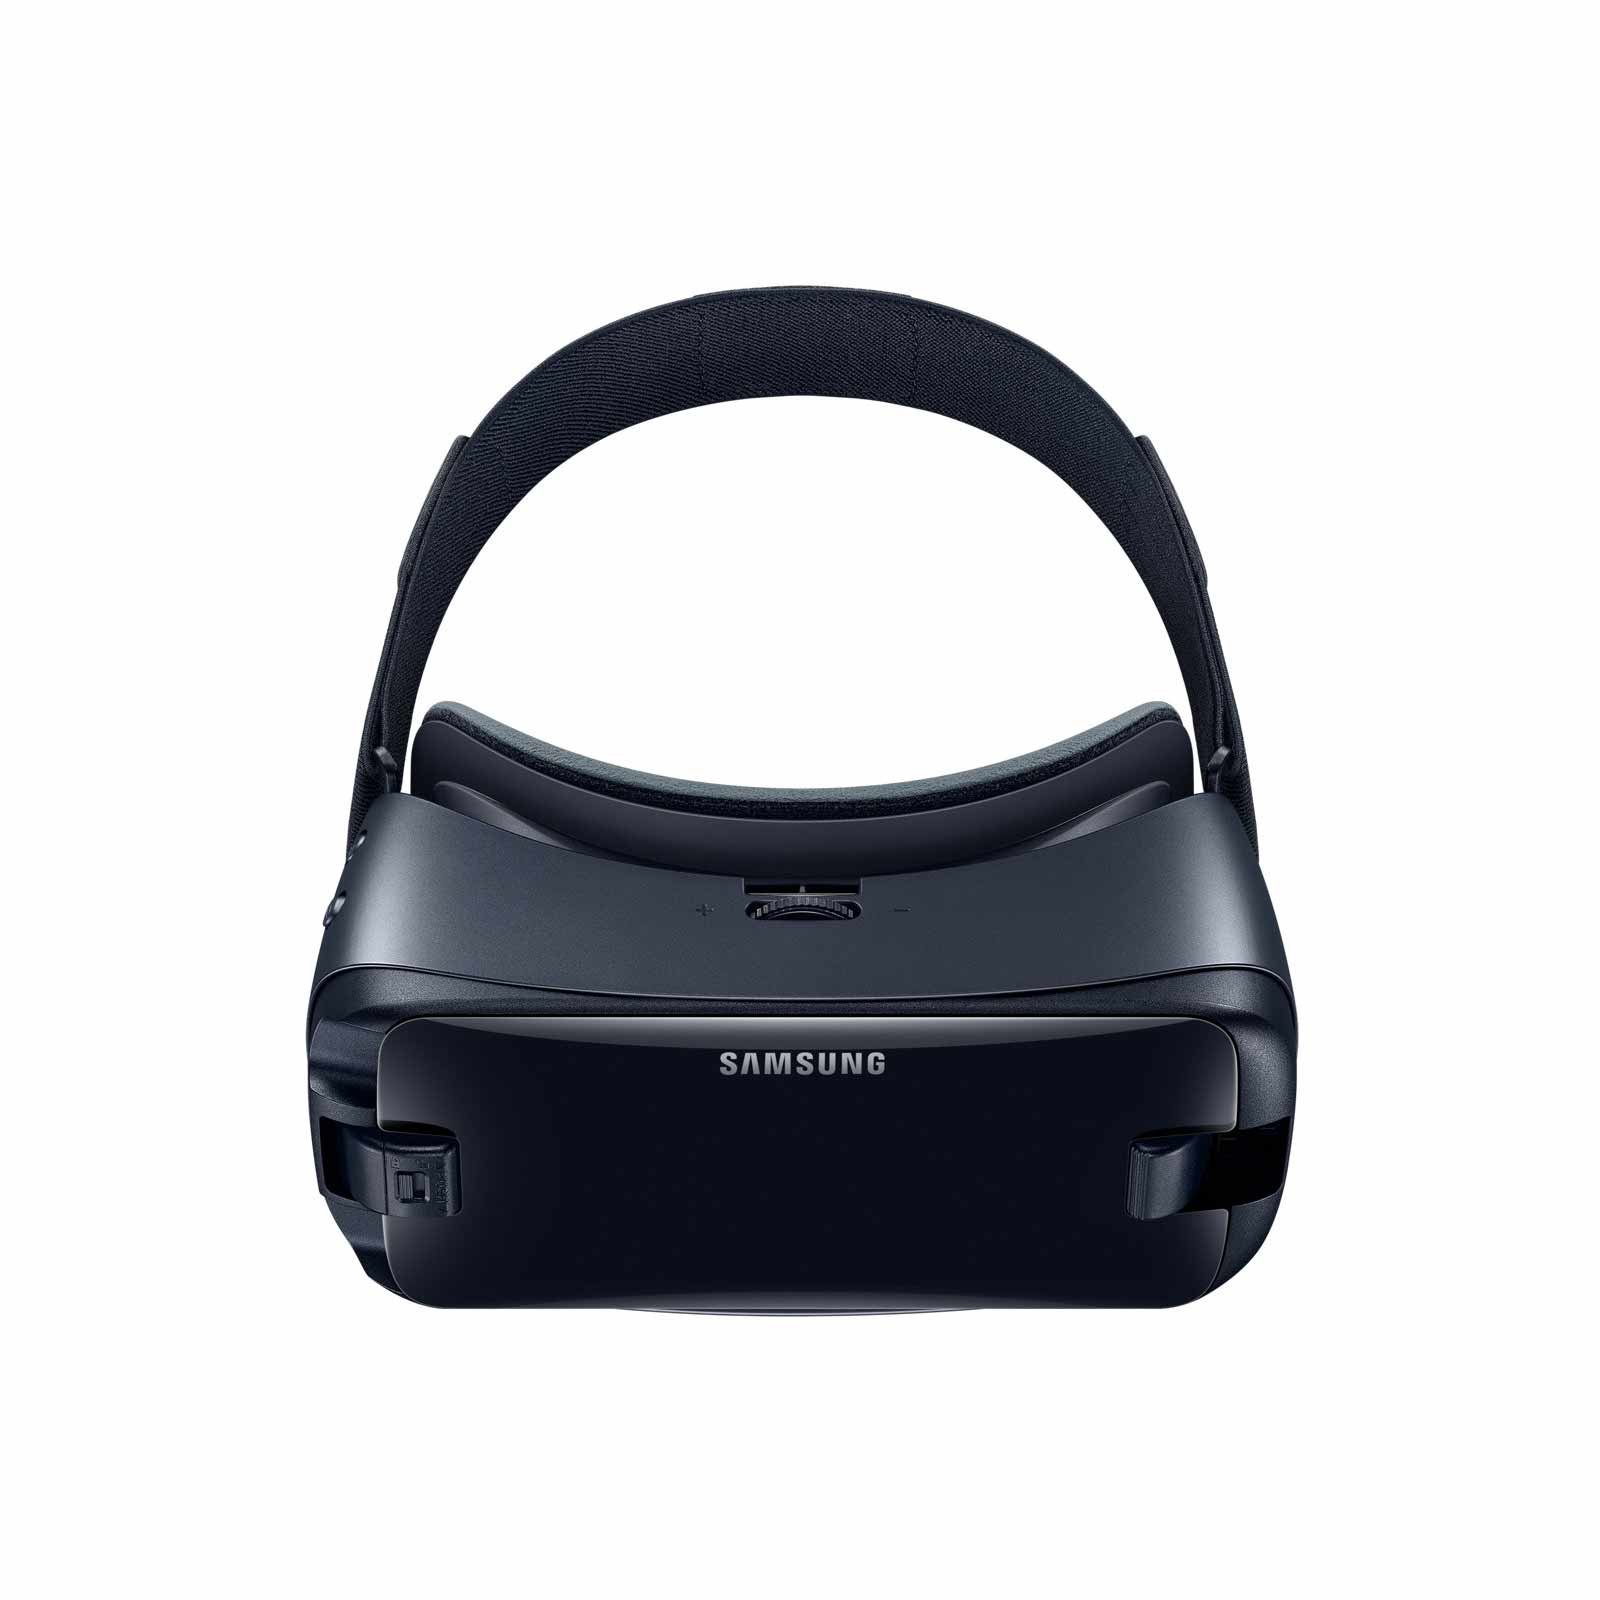 Samsung Gear VR (2017 Edition) with Controller Virtual Reality Headset SM-R325 for Galaxy S8, S8+, S7, S7 edge, Note5, Note 8, S6 edge+, S6, S6 edge (International Version, No Warranty) by Samsung (Image #6)